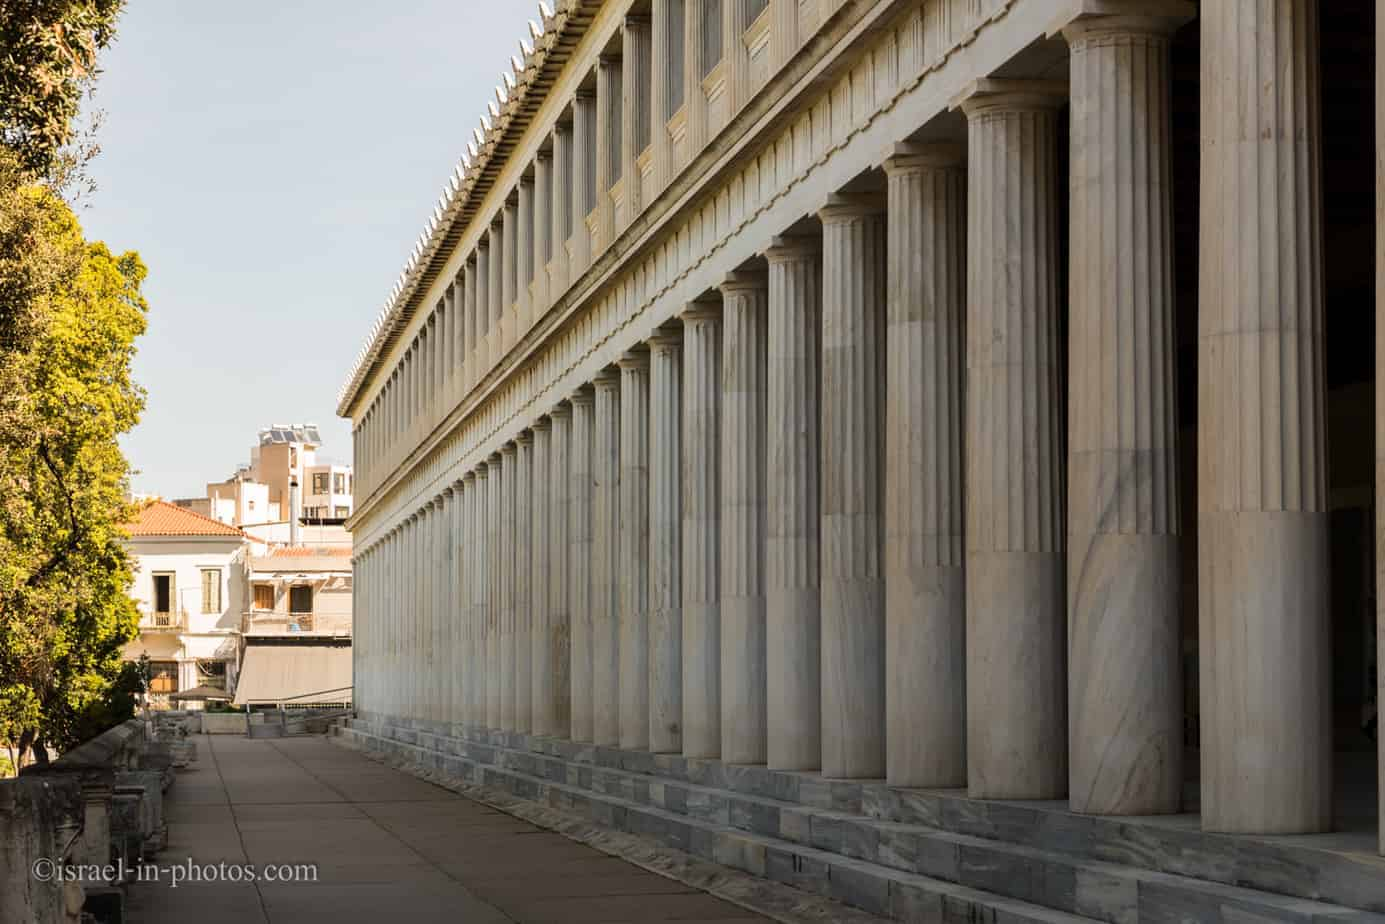 Visiting Ancient Agora of Athens in Greece, Europe